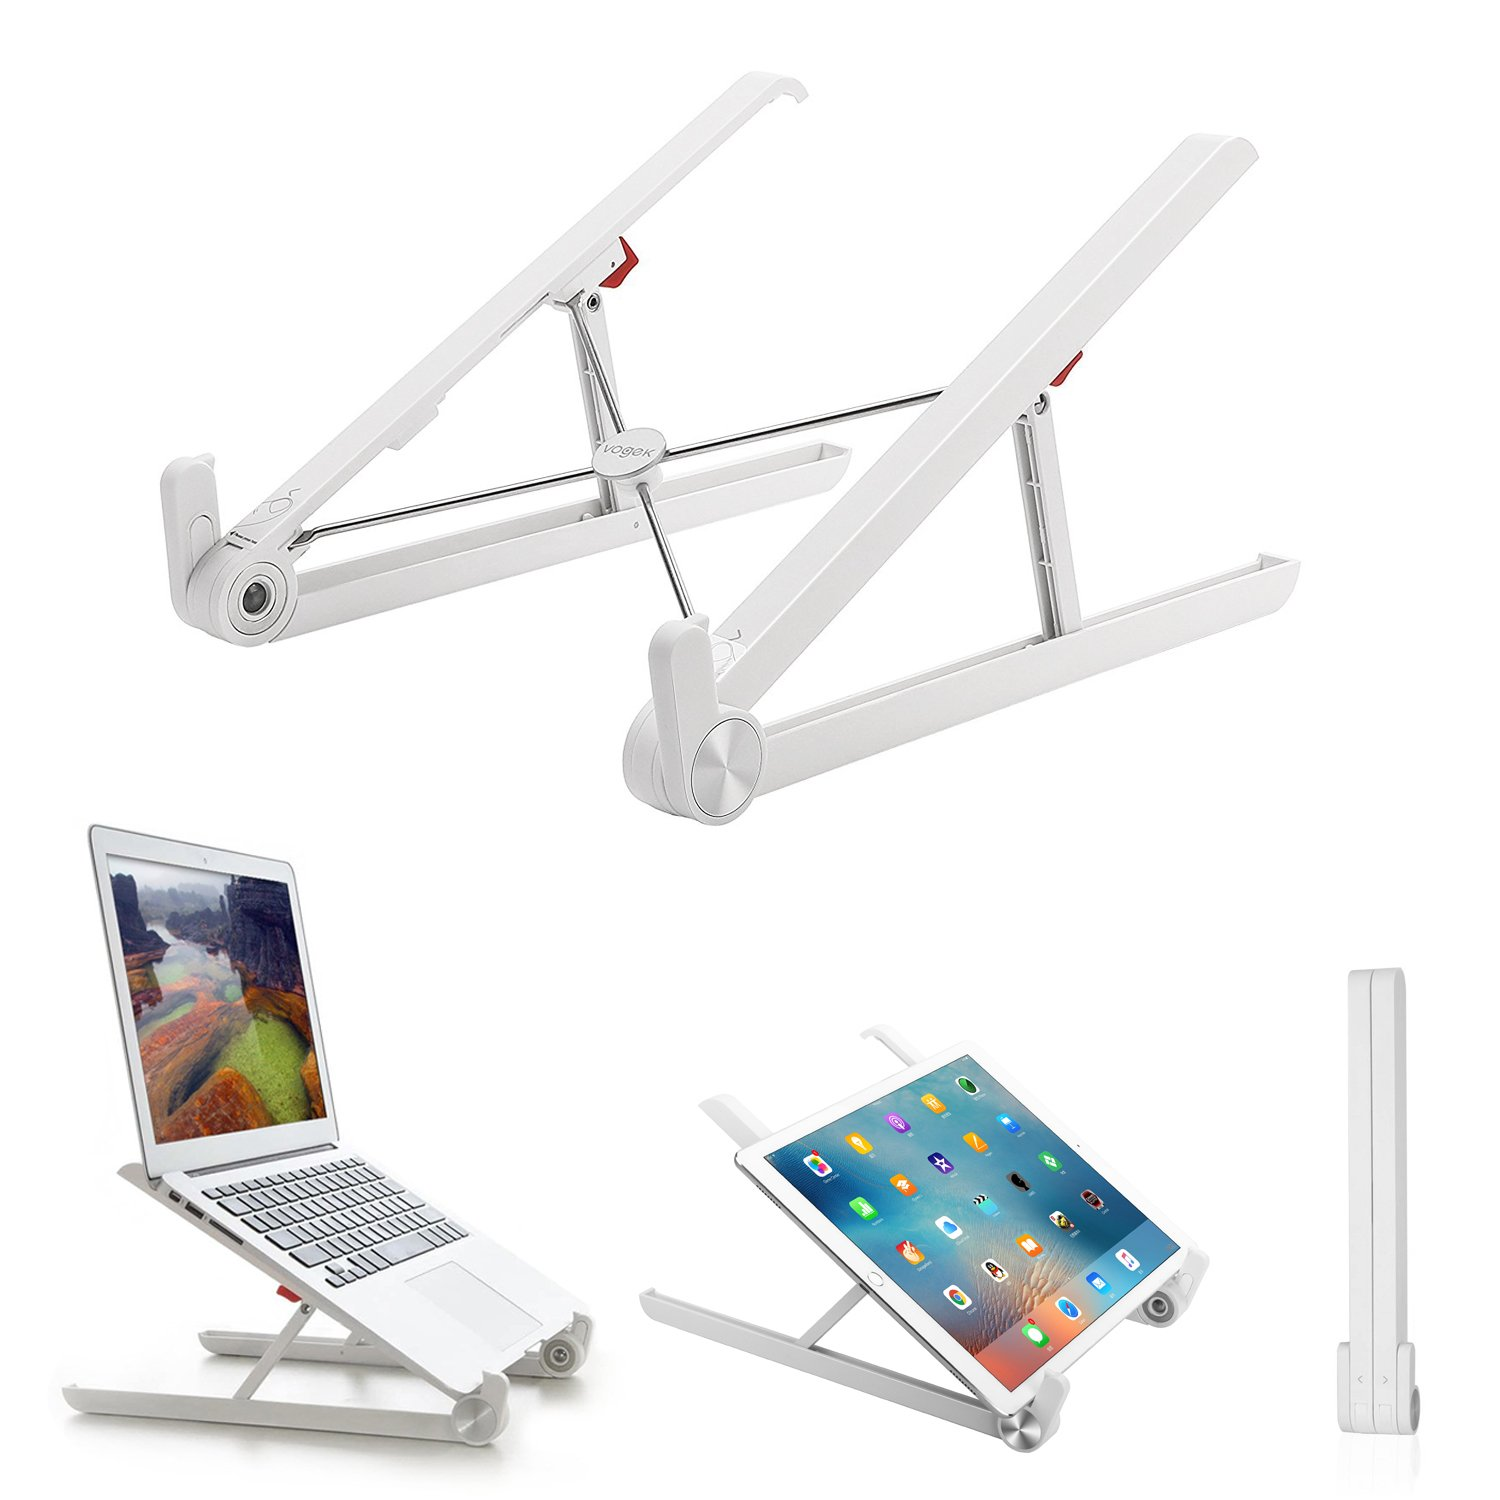 Laptop Stand for Desk, Vogek Adjustable Foldable Portable Laptop Stand for MacBook Pro/Air, iPad Pro, Surface Pro 3/4, ThinkPad MateBook and More (White)